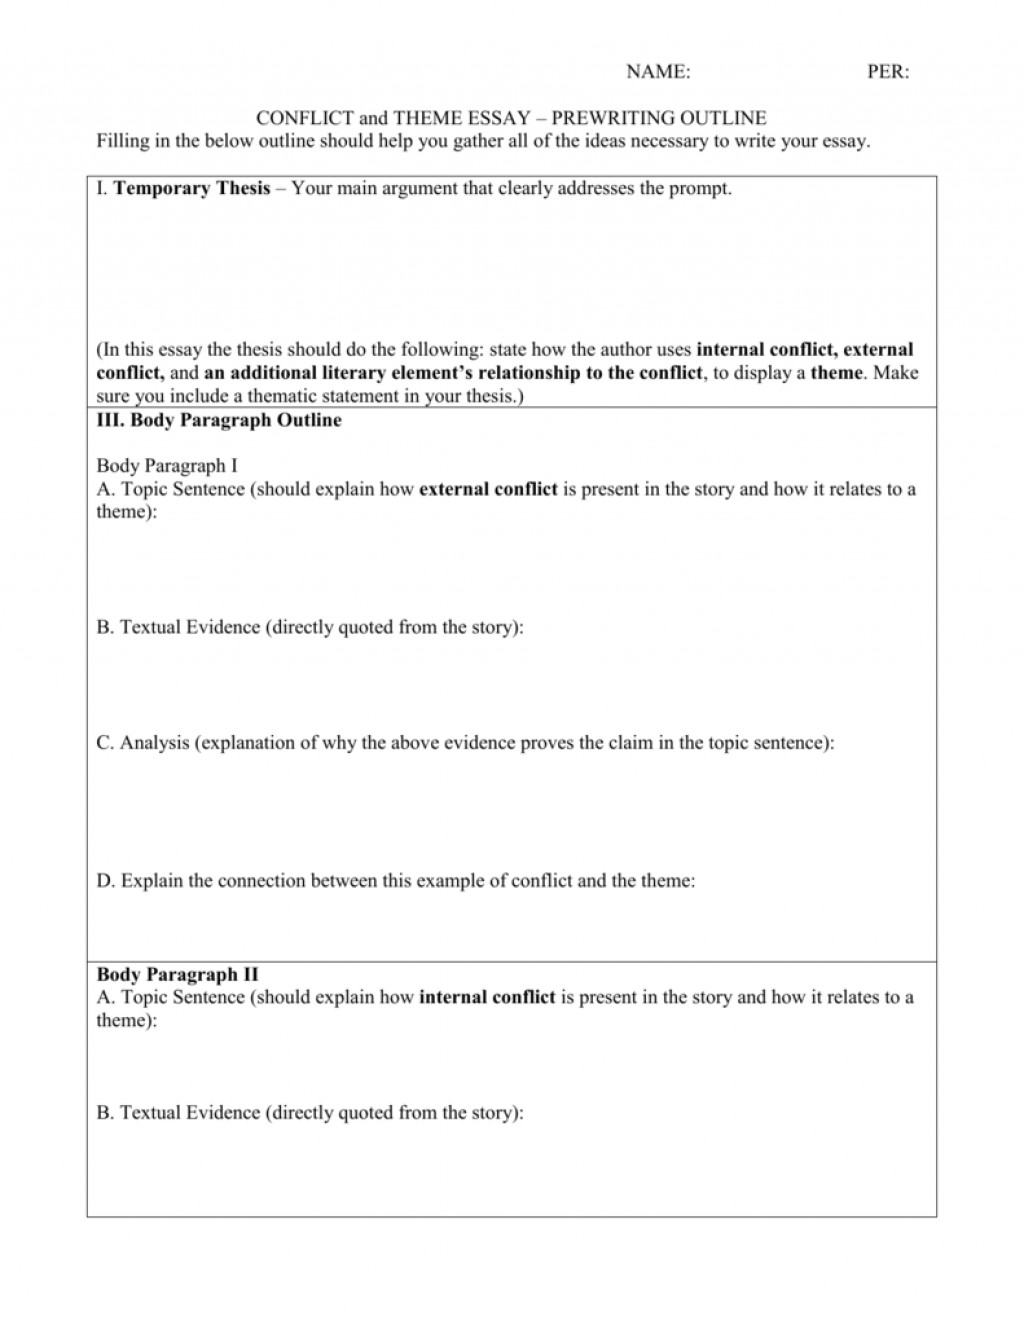 008 Outline Essay 008002500 1 Fascinating About Immigration Tok Structure Definition Large